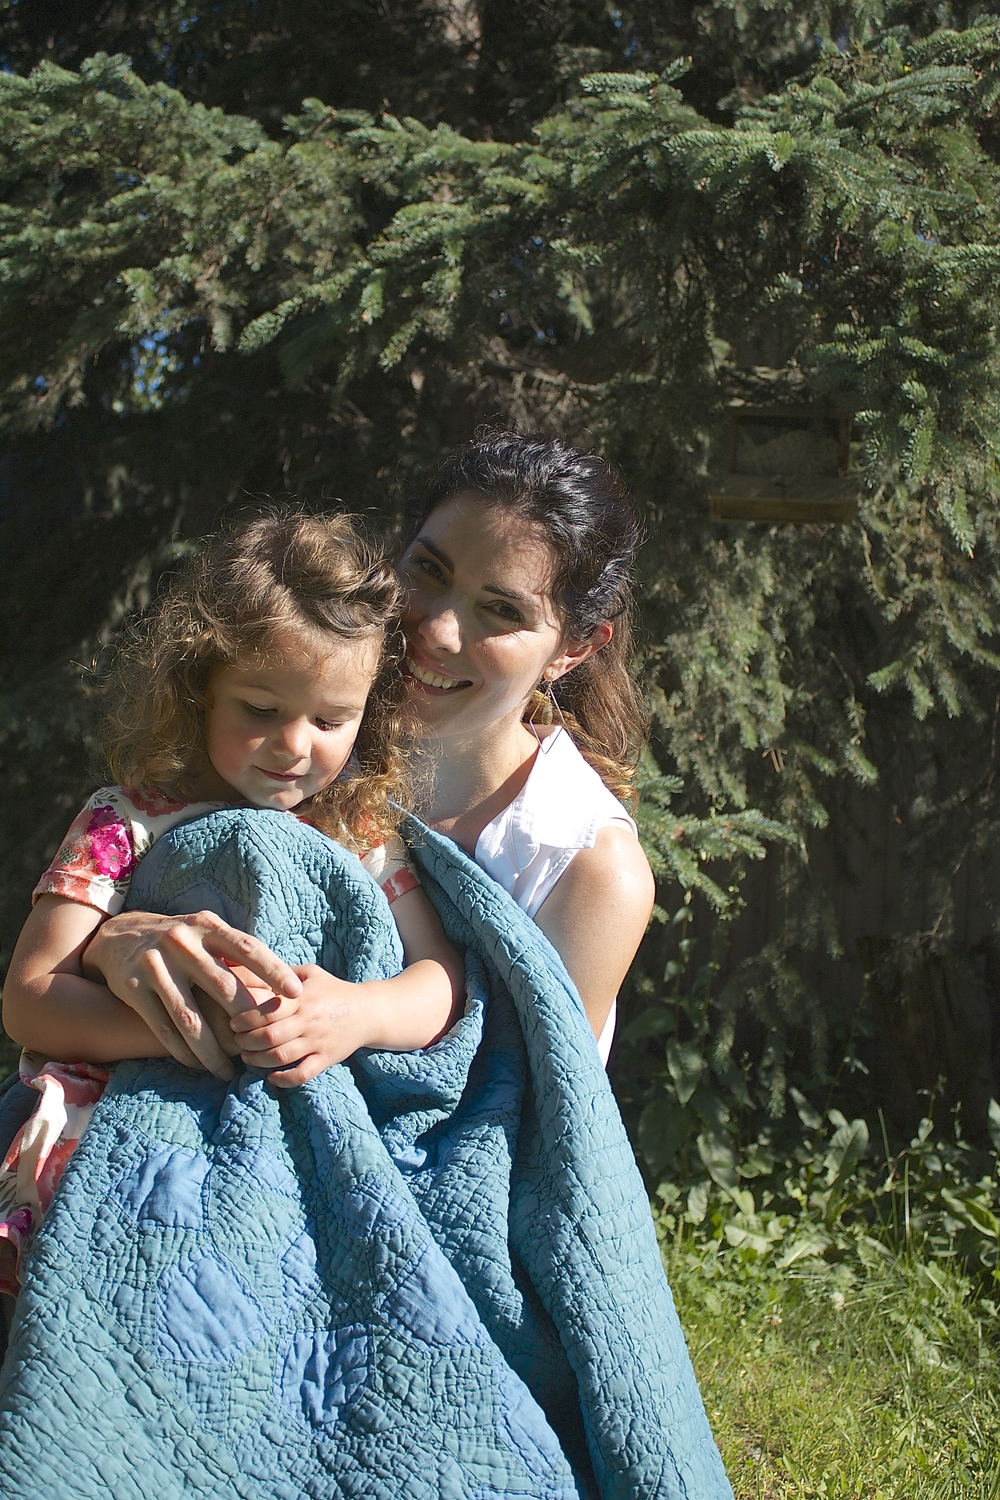 Photography provided by Red House West - Mera and her daughter Opal with a thrifted quilt that she over-dyed with indigo.